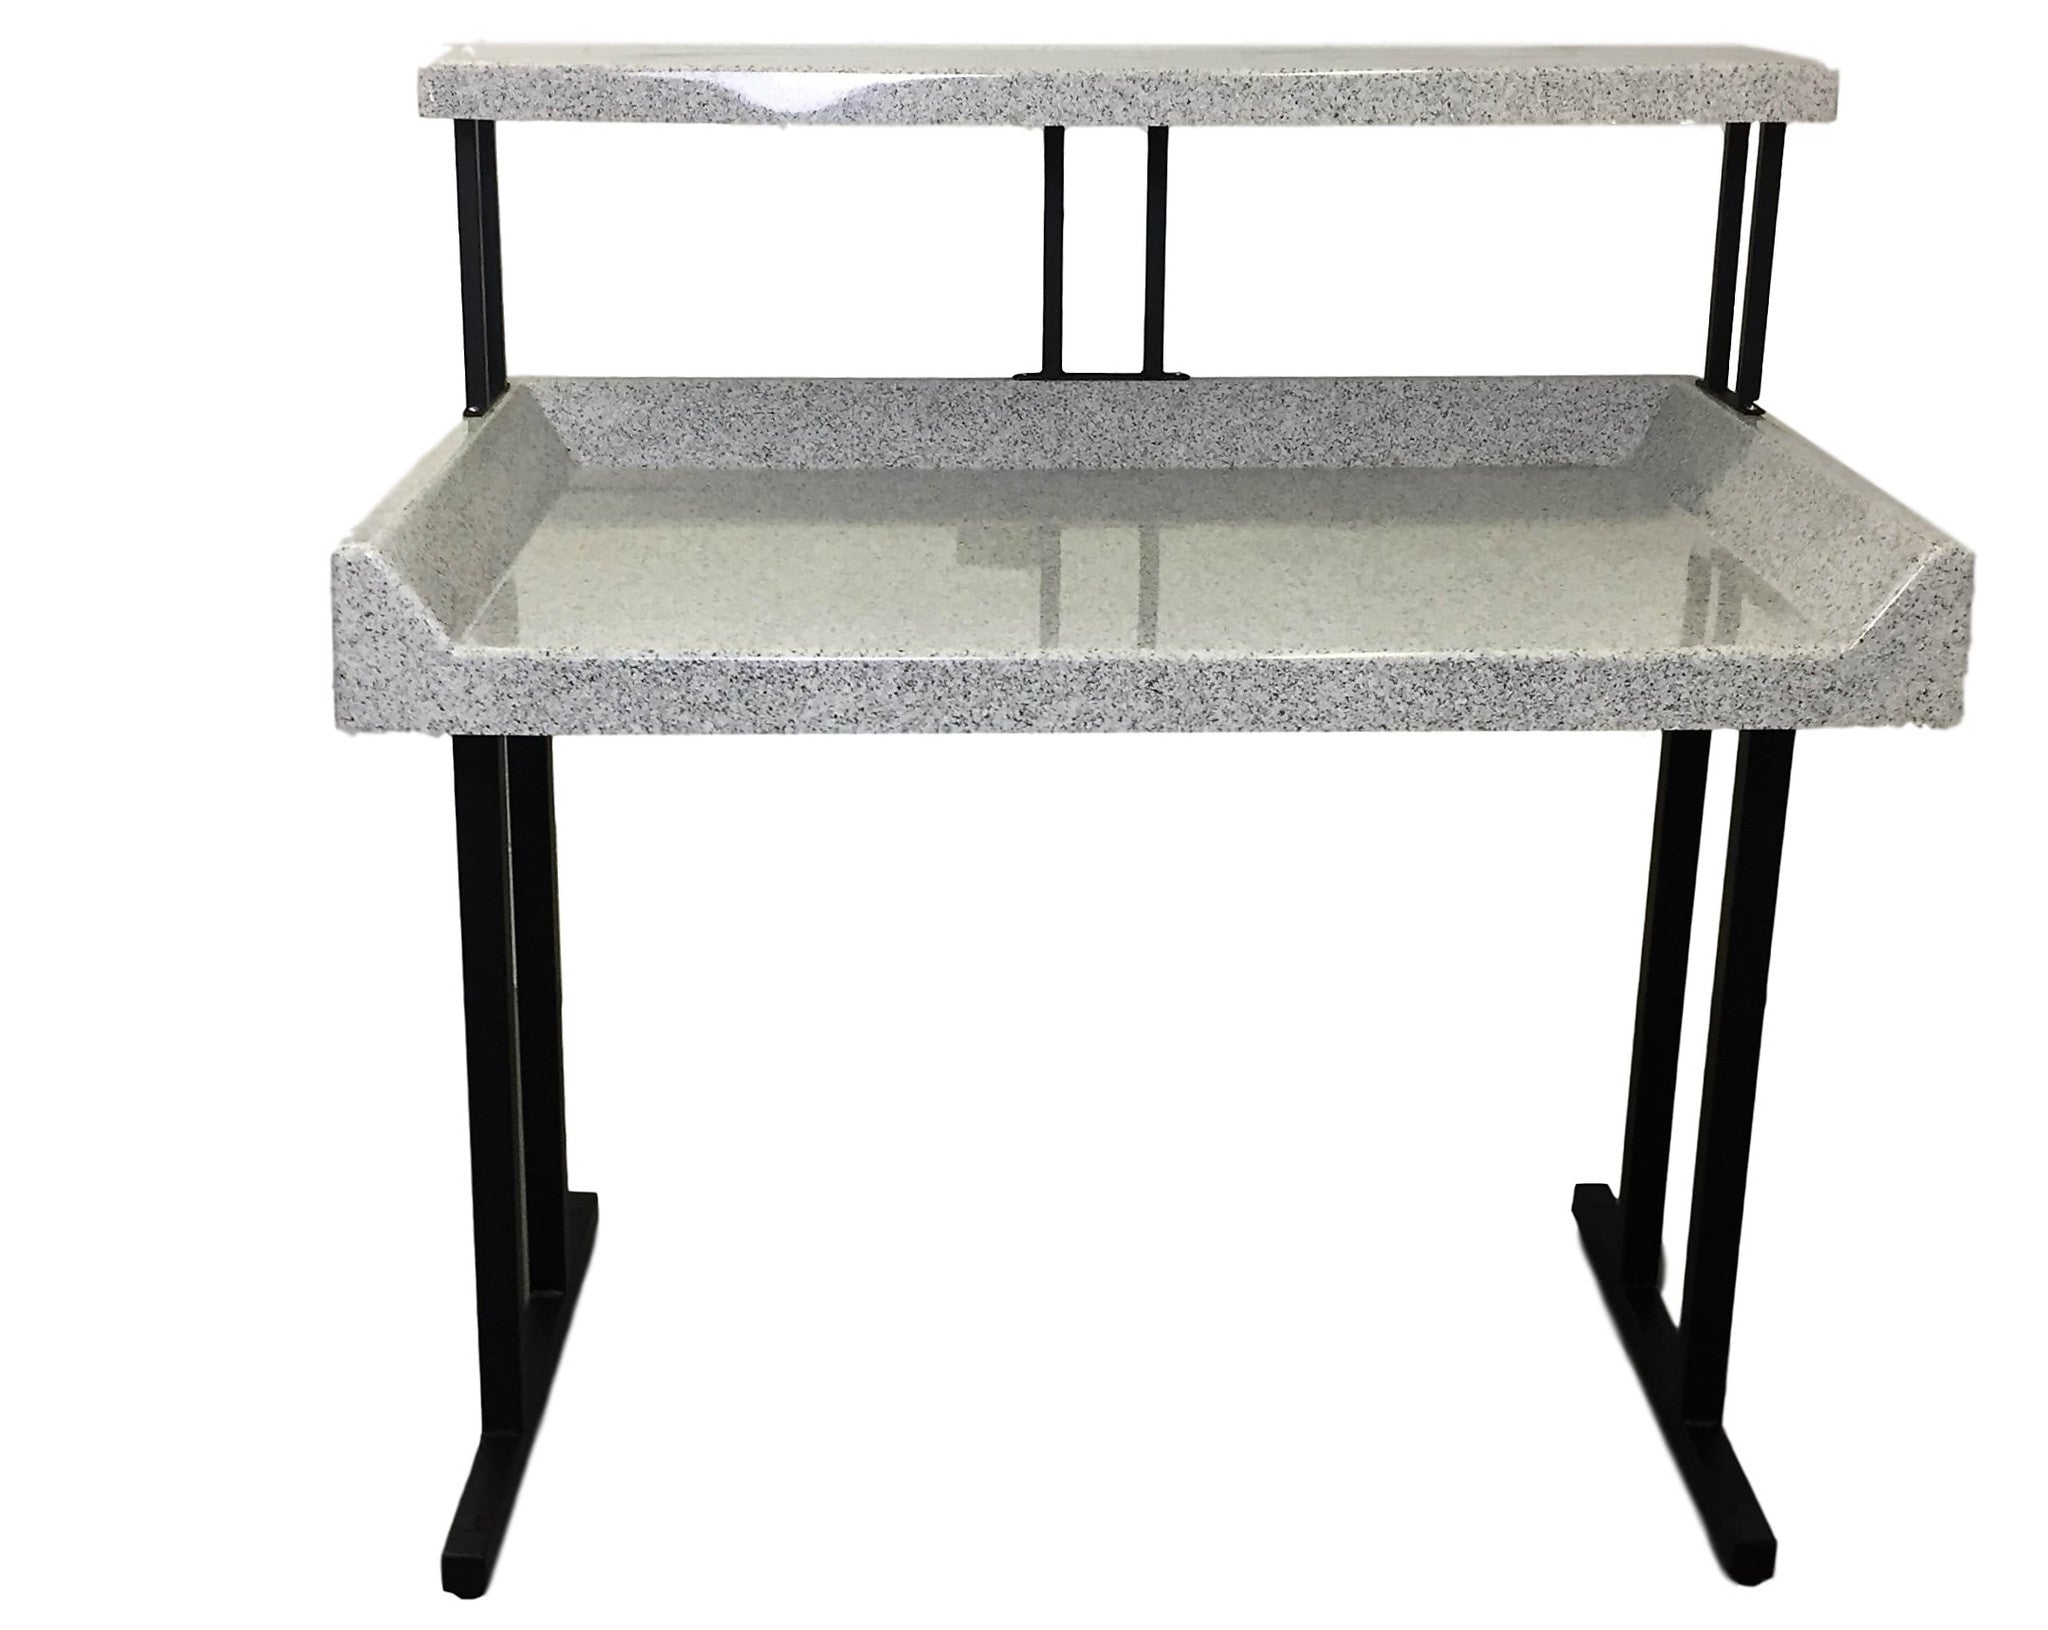 - TFD-U Style 6' Fiberglass Tables With Shelf - Midwest Laundries Inc